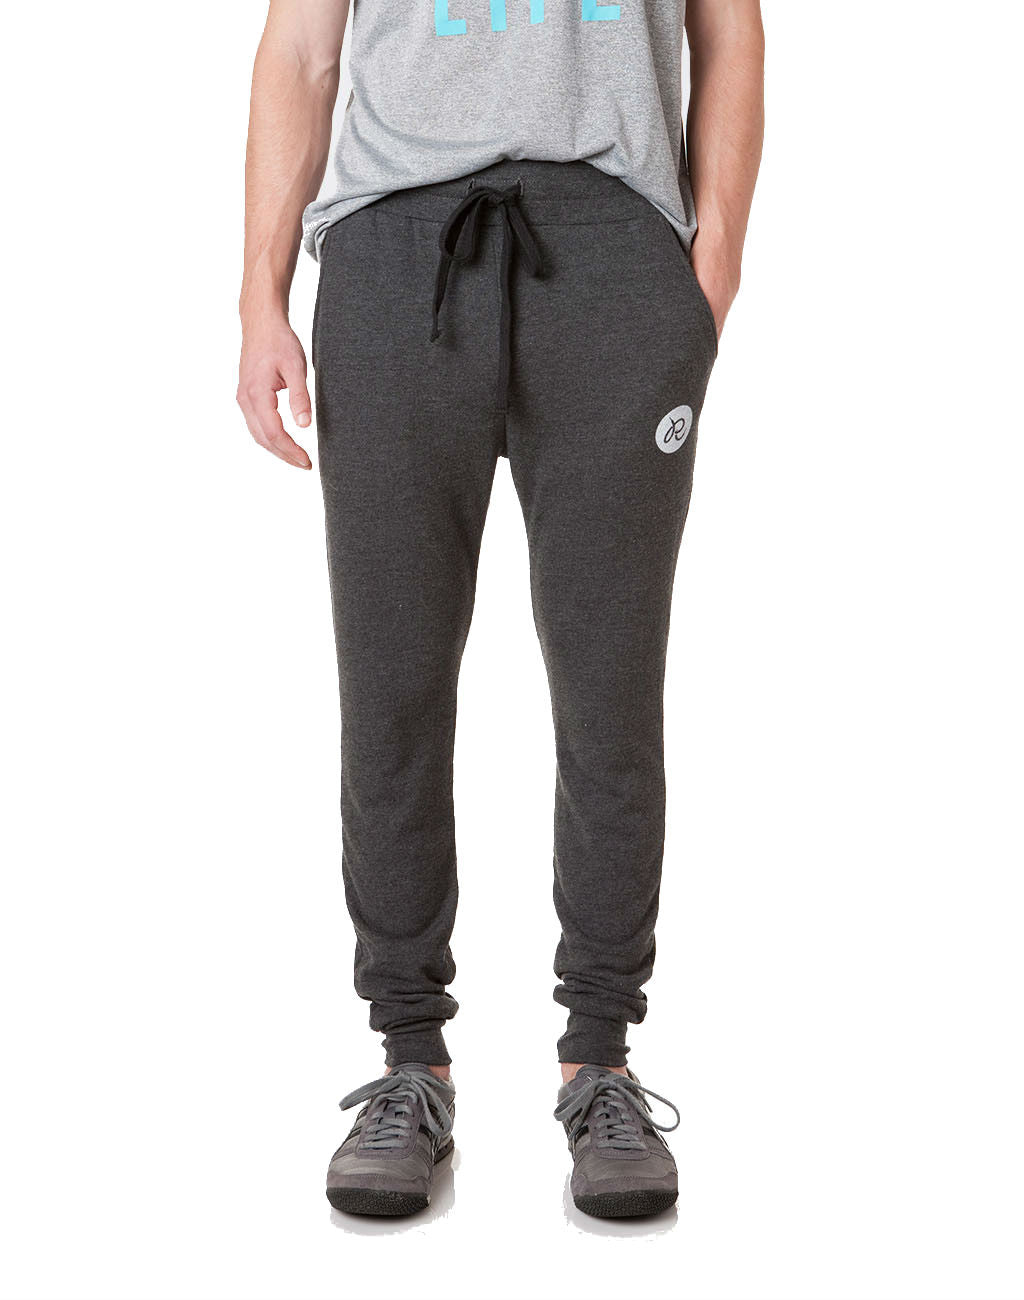 Rest Day Joggers (unisex)